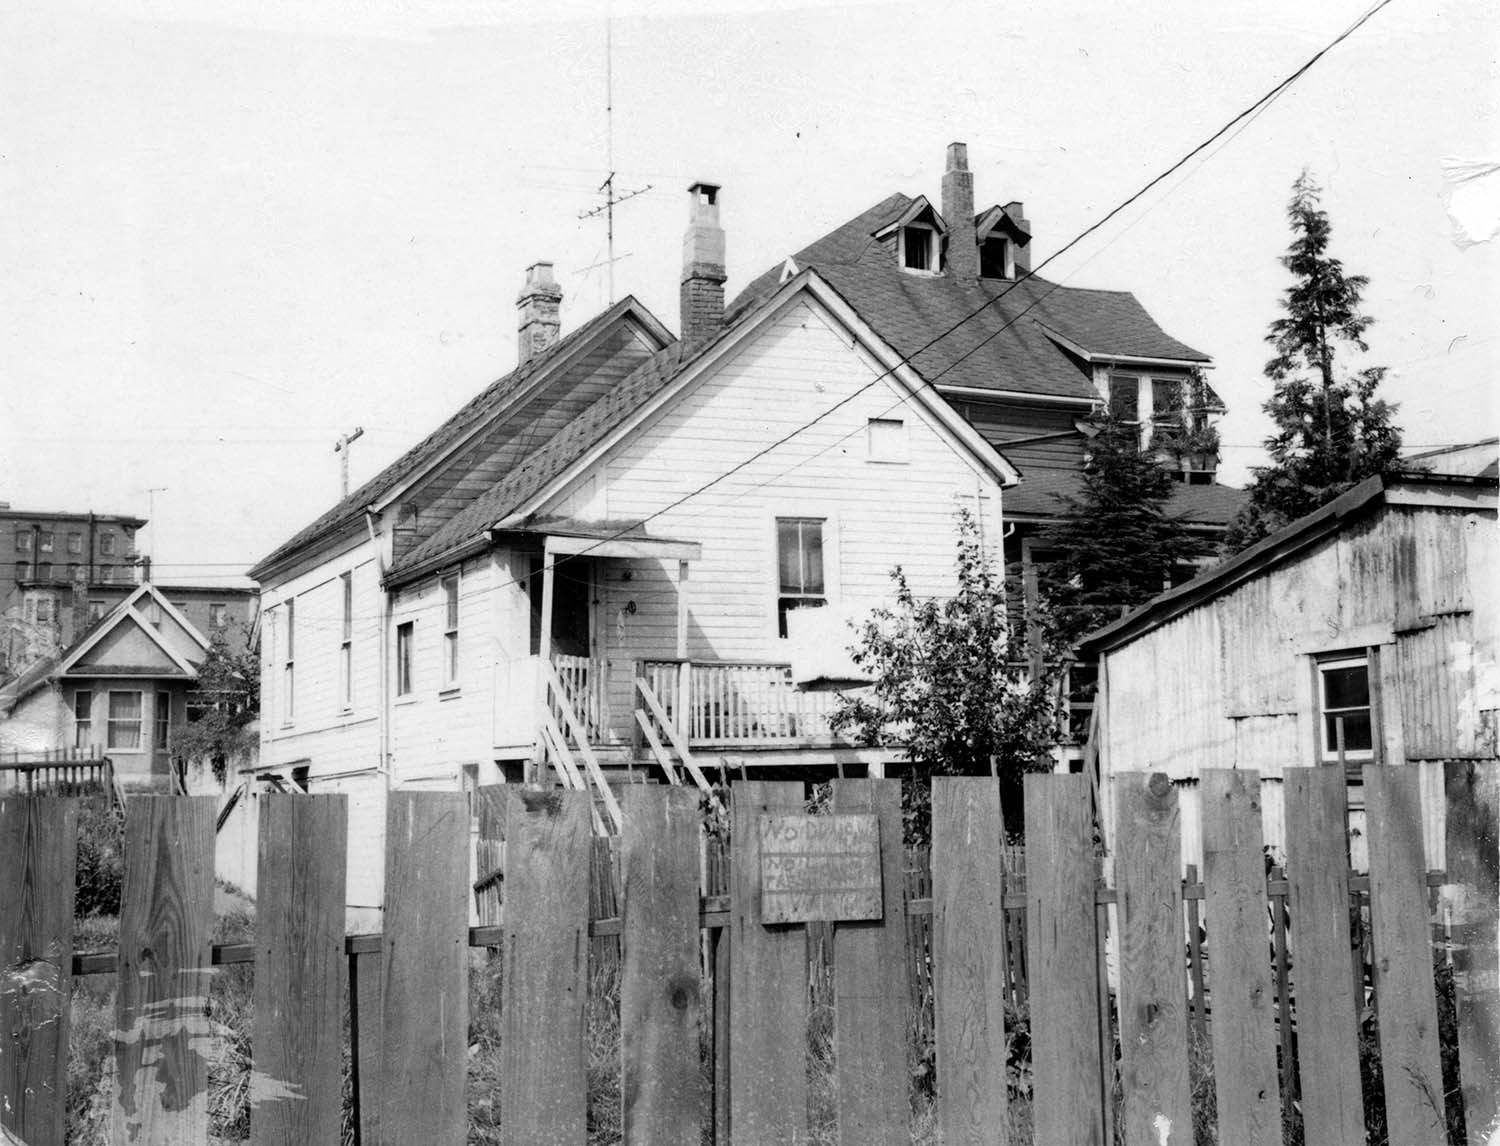 264 Union Street, back, 1969. Photograph also shows part of 268 Union Street. Reference code COV-S168-: CVA 203-50